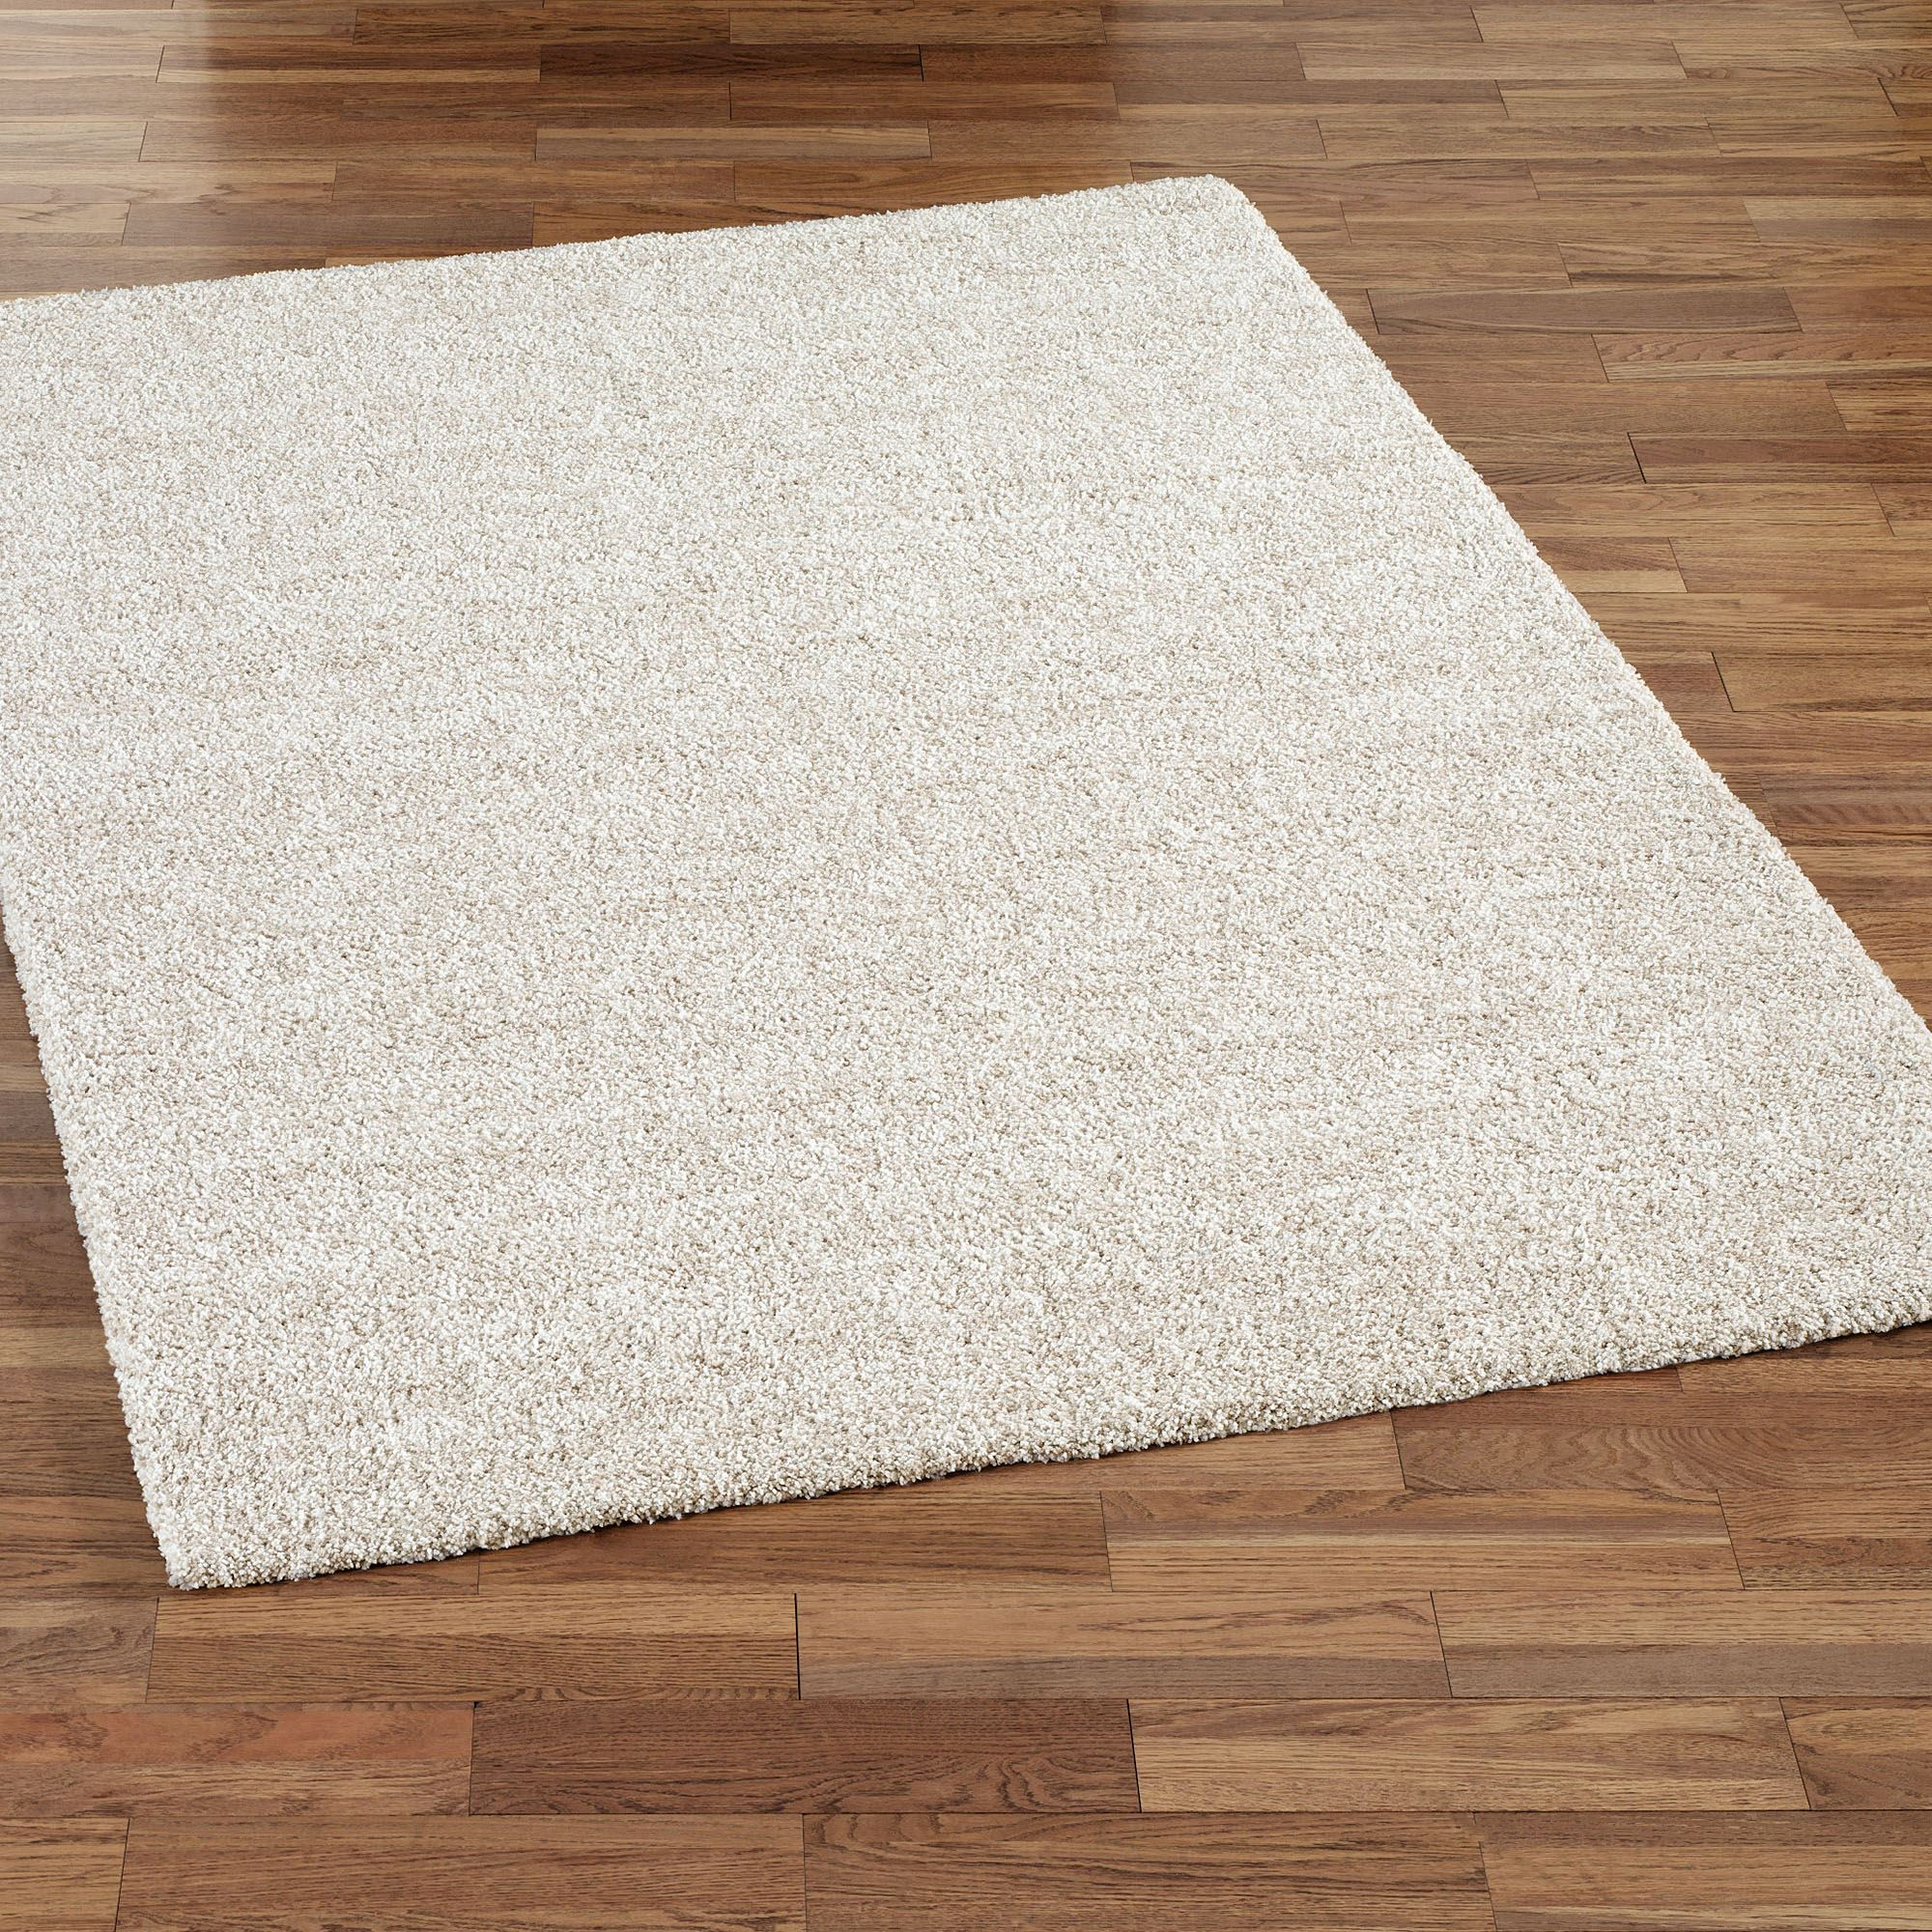 Frosted Luxury Soft Plush Shag Area Rugs